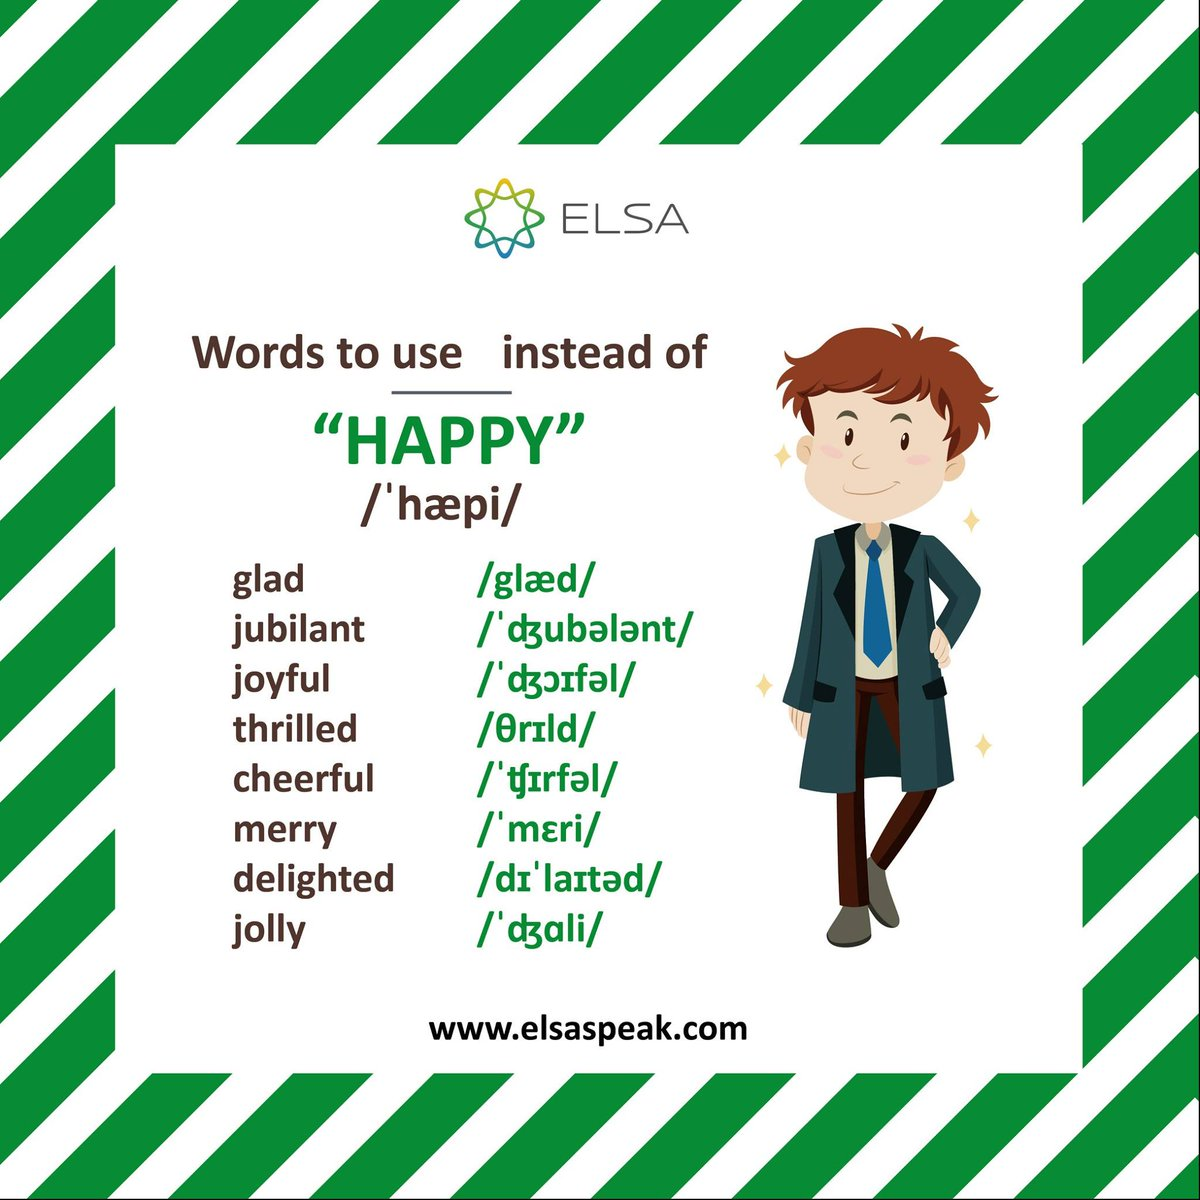 Its FRIDAY finally! Its time to relax and be happy. And why be happy in just one way when you can say it in so many more. Download Elsa Speak at https://t.co/bENiEpfRpe and learn to say several new words. #EnglishTips #SpokenEnglish #PracticewithElsa #FridayFeeling https://t.co/a2FI3kfQ1Q